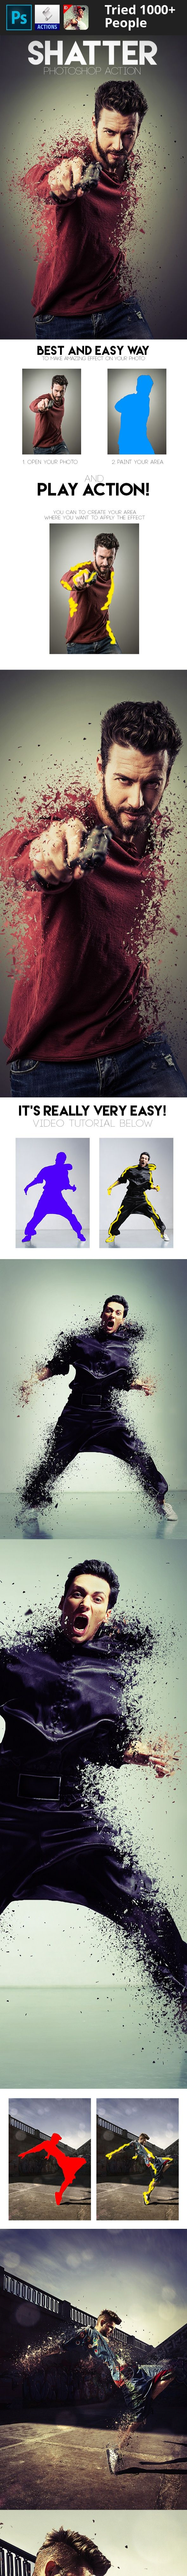 3d, abstract, action, atn, break, broken, disperse, dispersion, distortion, explode, glass, particles, photo effect, photoshop, professional, psd, shatter, template       Shatter Photoshop Action – this ultra-realistic effects contains a many particles of different sizes and shapes. Shatter action uses unique method recreating of background for more realism. Do you want to shatter your object on the photo and get an amazing result? Do it with the Shatter Action in a few clicks!   Watch ...